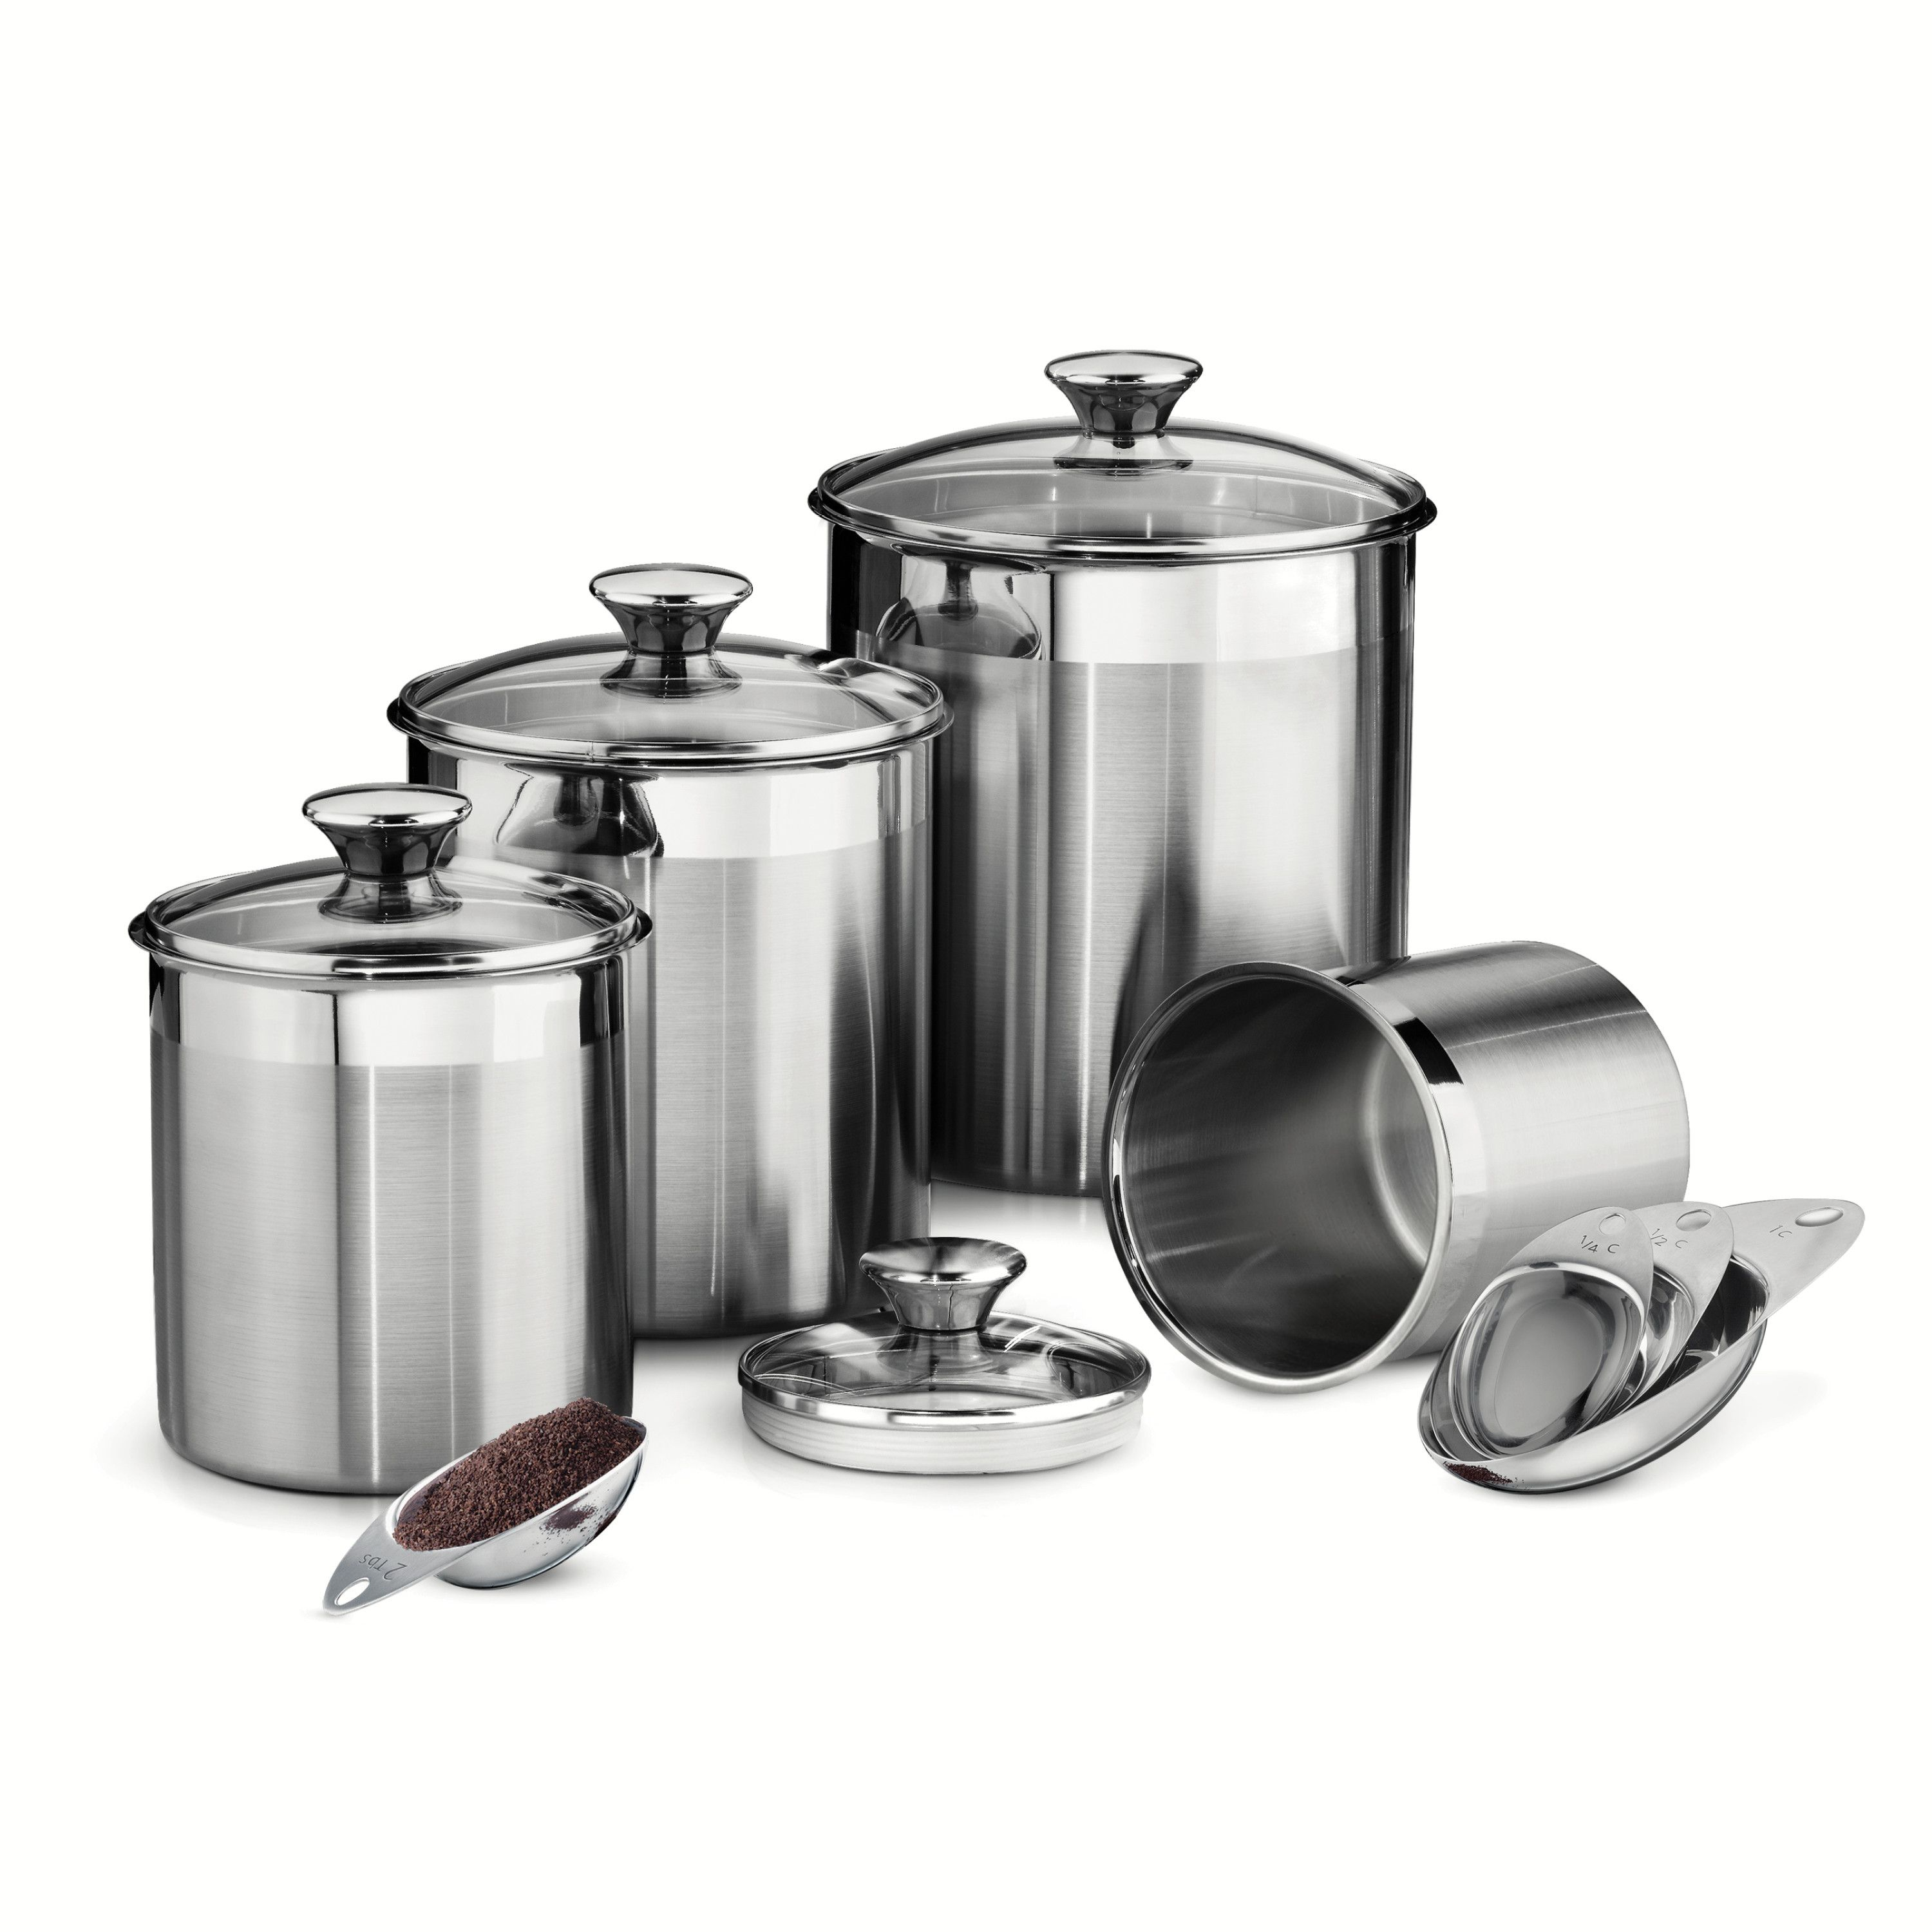 Gourmet 4 Piece Kitchen Canister Set | Kitchen canister sets ...